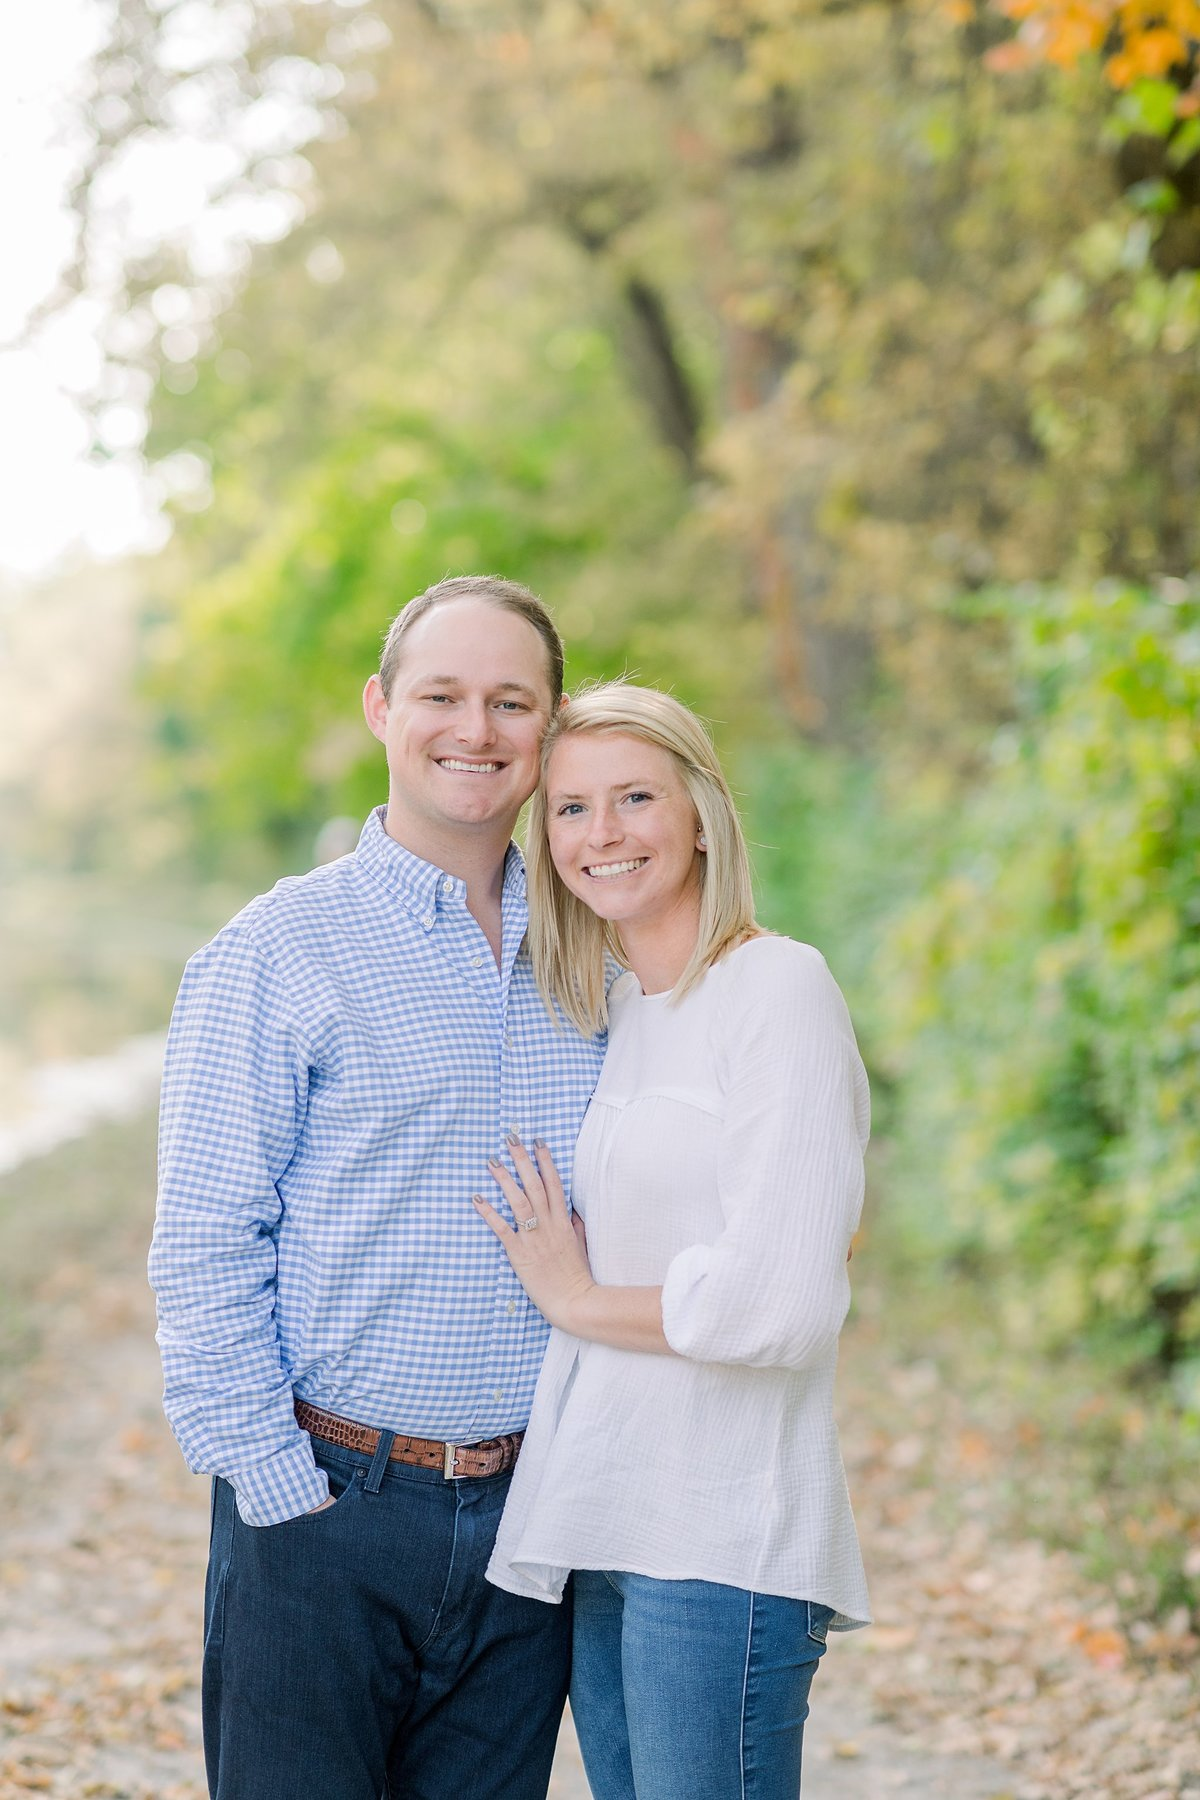 Holcomb Gardens Engagement Session Indianapolis, Indiana Wedding Photographer Alison Mae Photography_3177